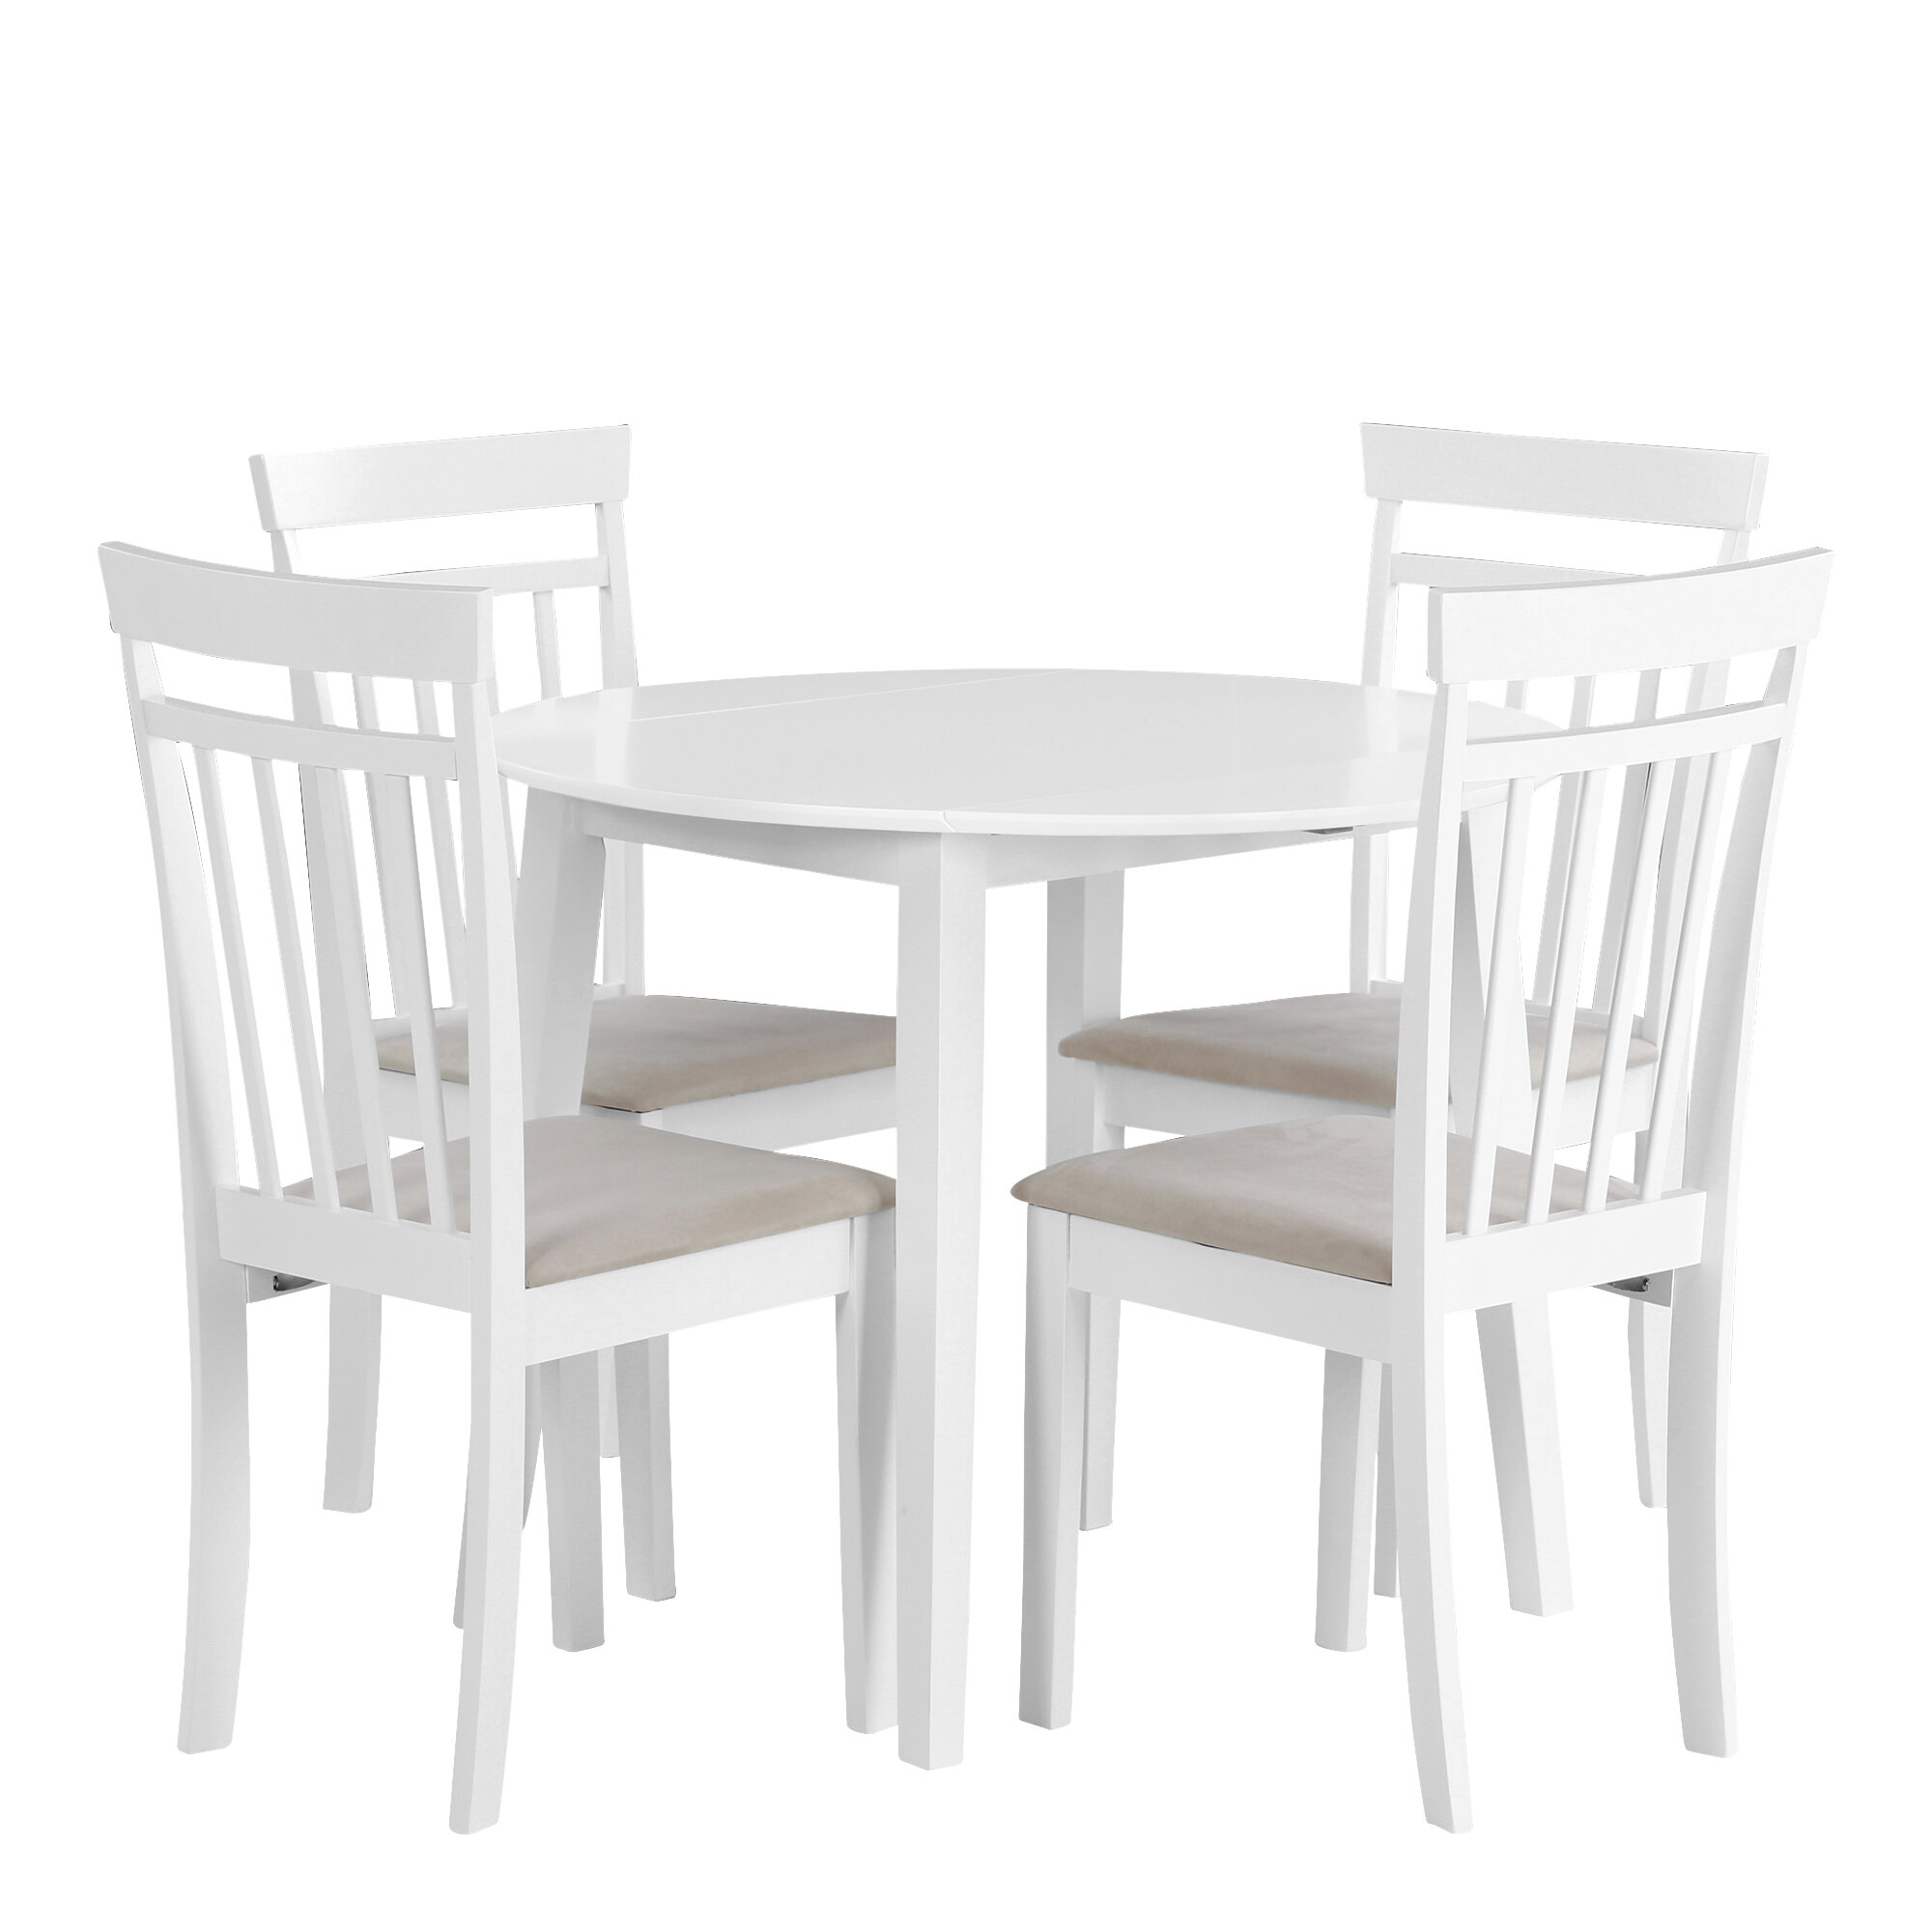 Venta > white round table with 9 chairs > en stock